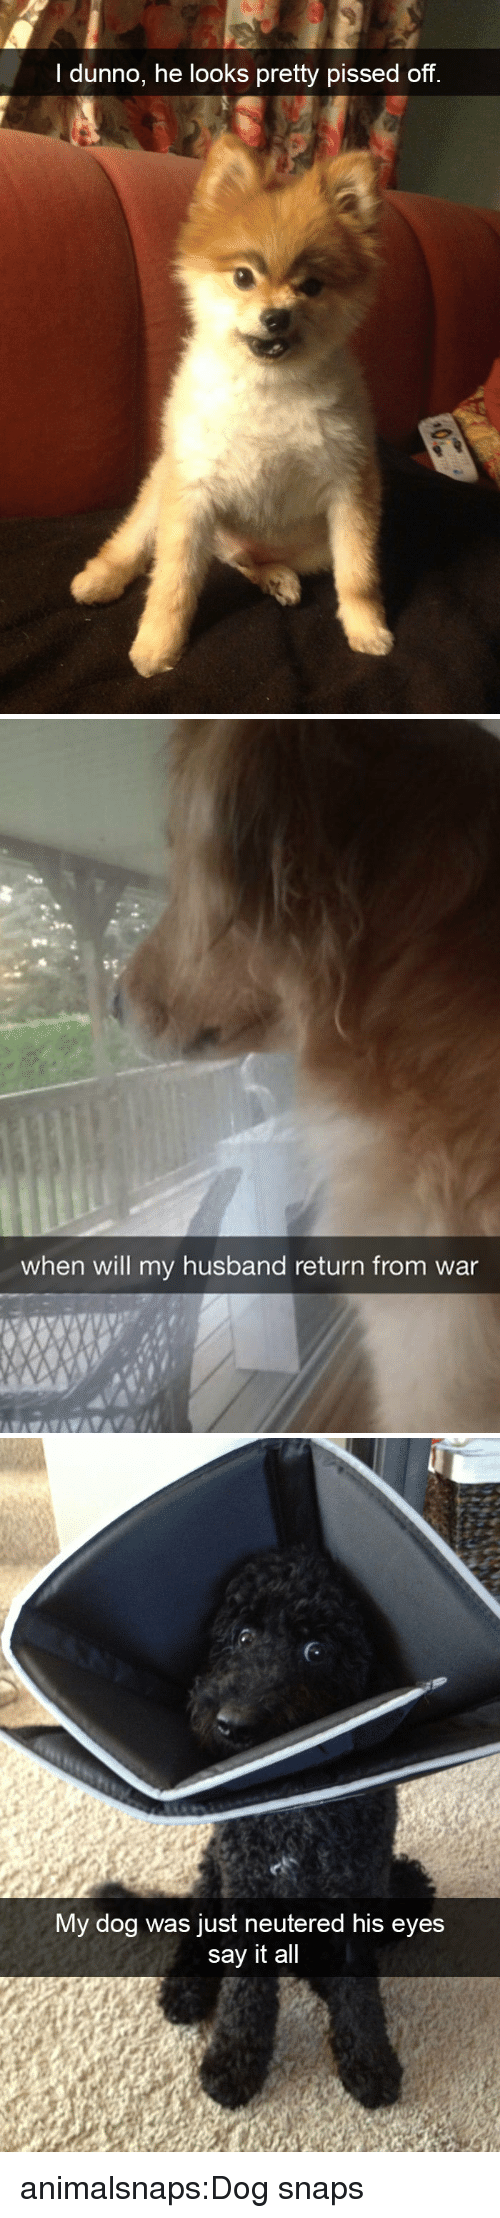 Target, Tumblr, and Say It: l dunno, he looks pretty pissed off   when will my husband return from war   My dog was just neutered his eyes  say it all animalsnaps:Dog snaps